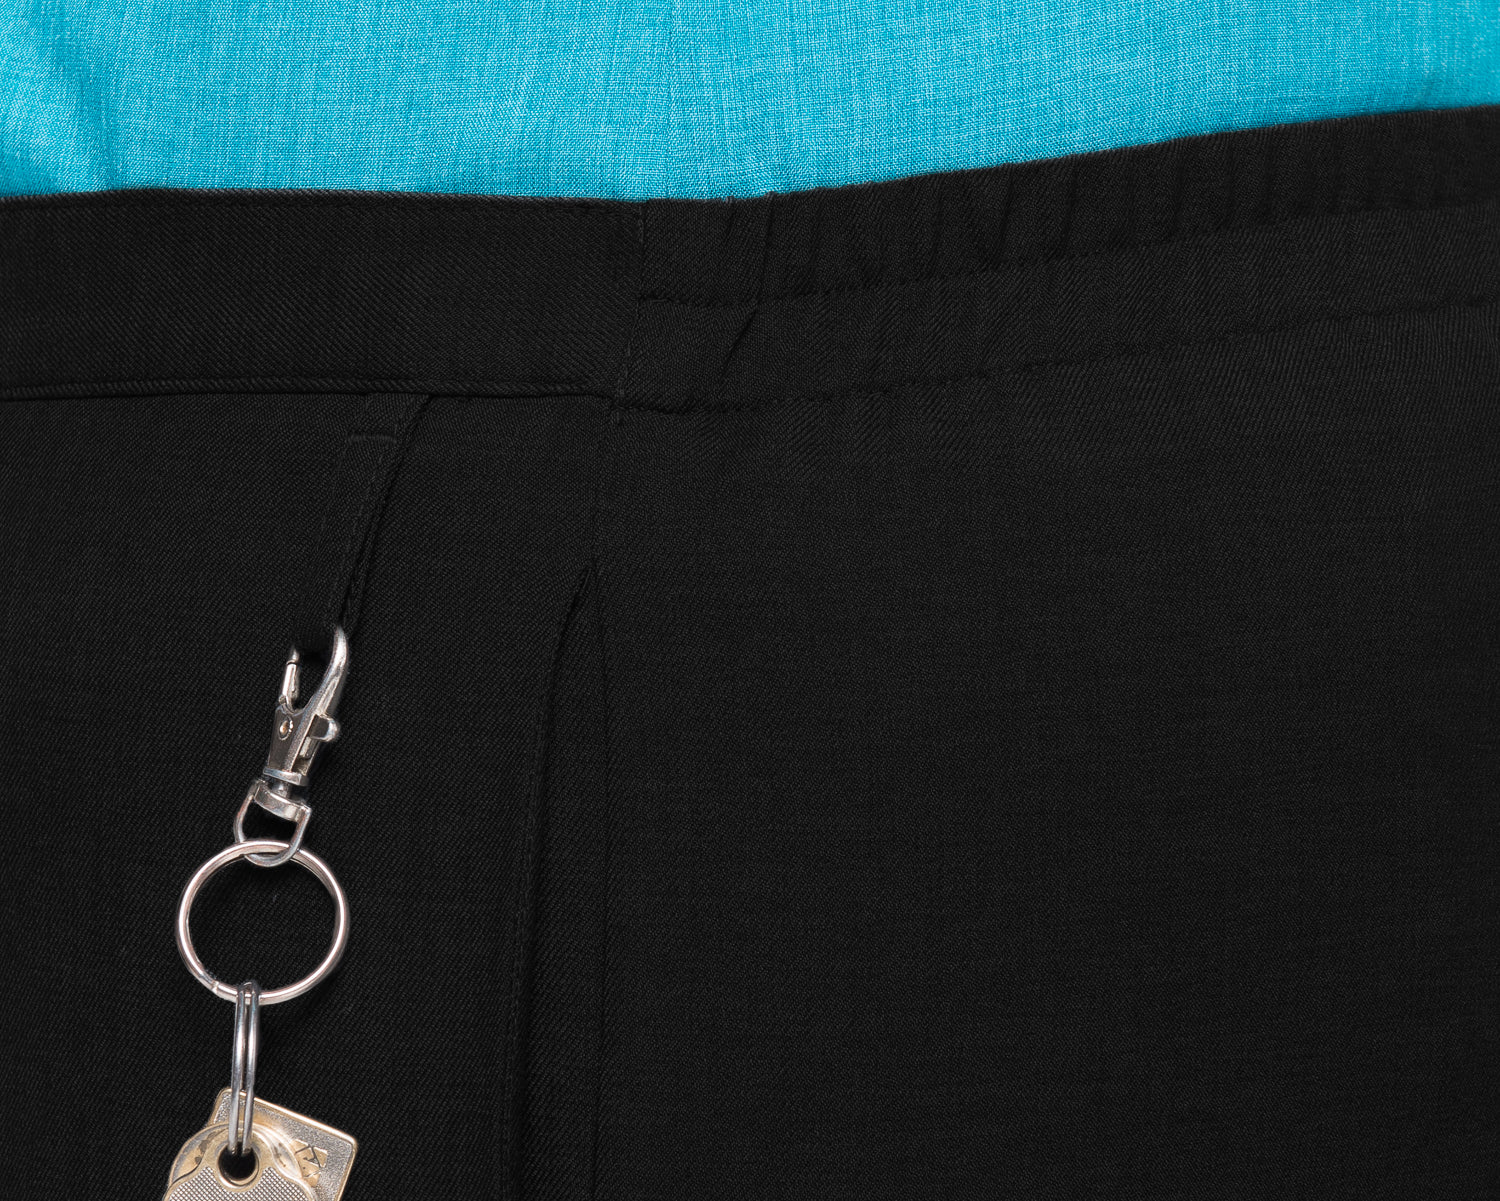 197K-ME-BLK: Easy fit pull on keyloop pant